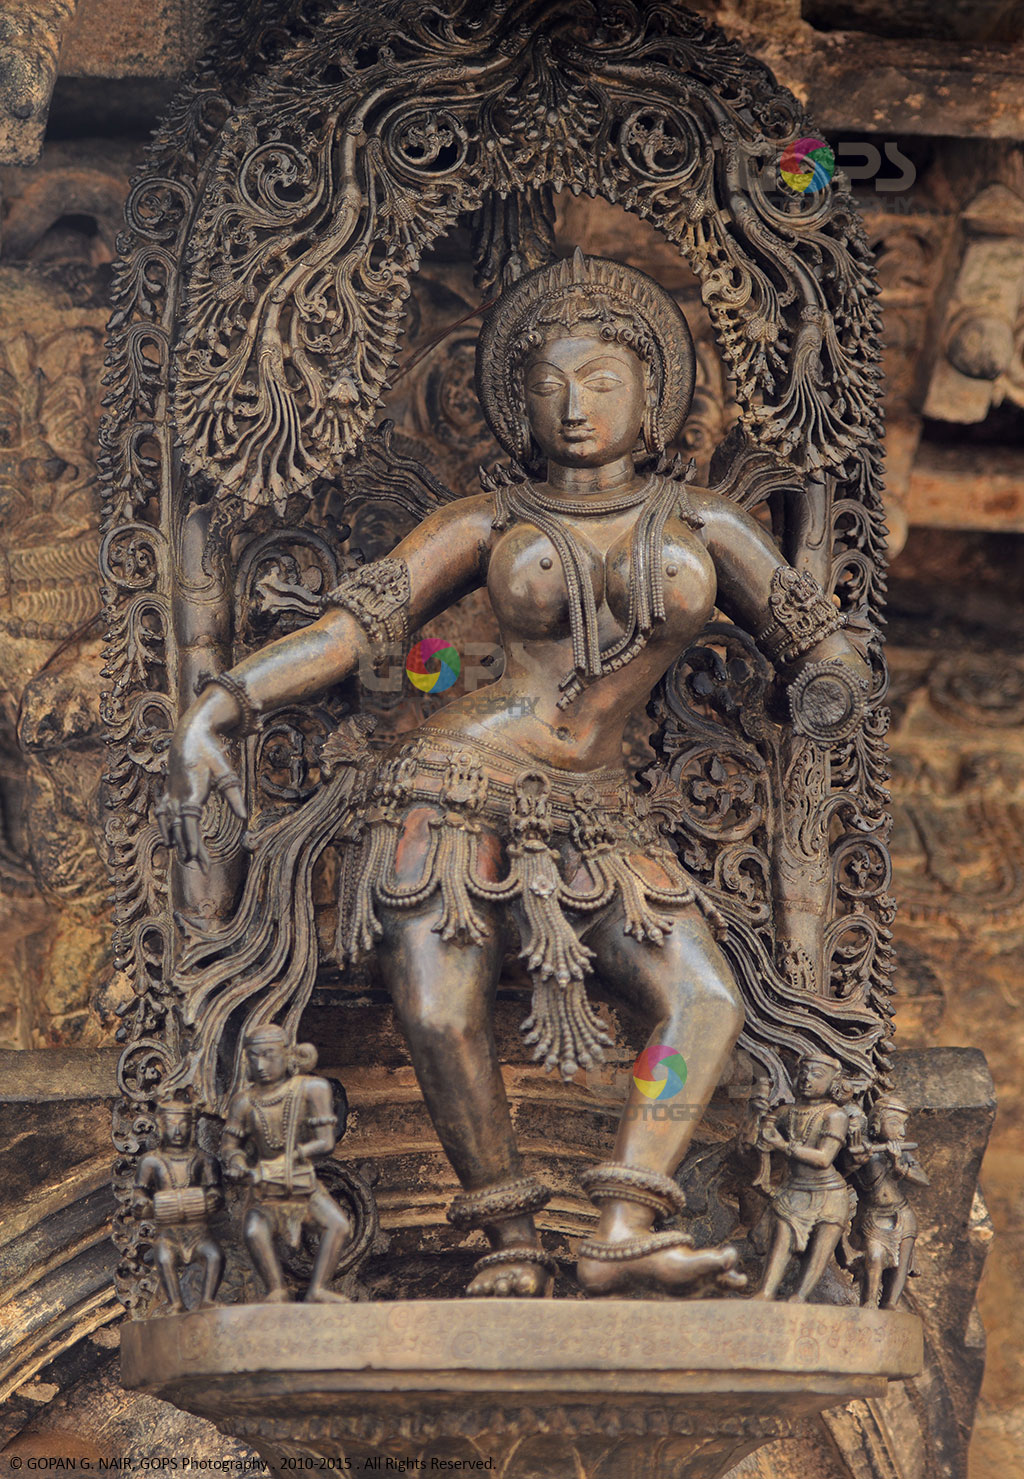 THE ARCH DANCER. LOOK AT THE INTRICATE ART WORK AROUND THE HEAD OF THIS DANCER MOTIF